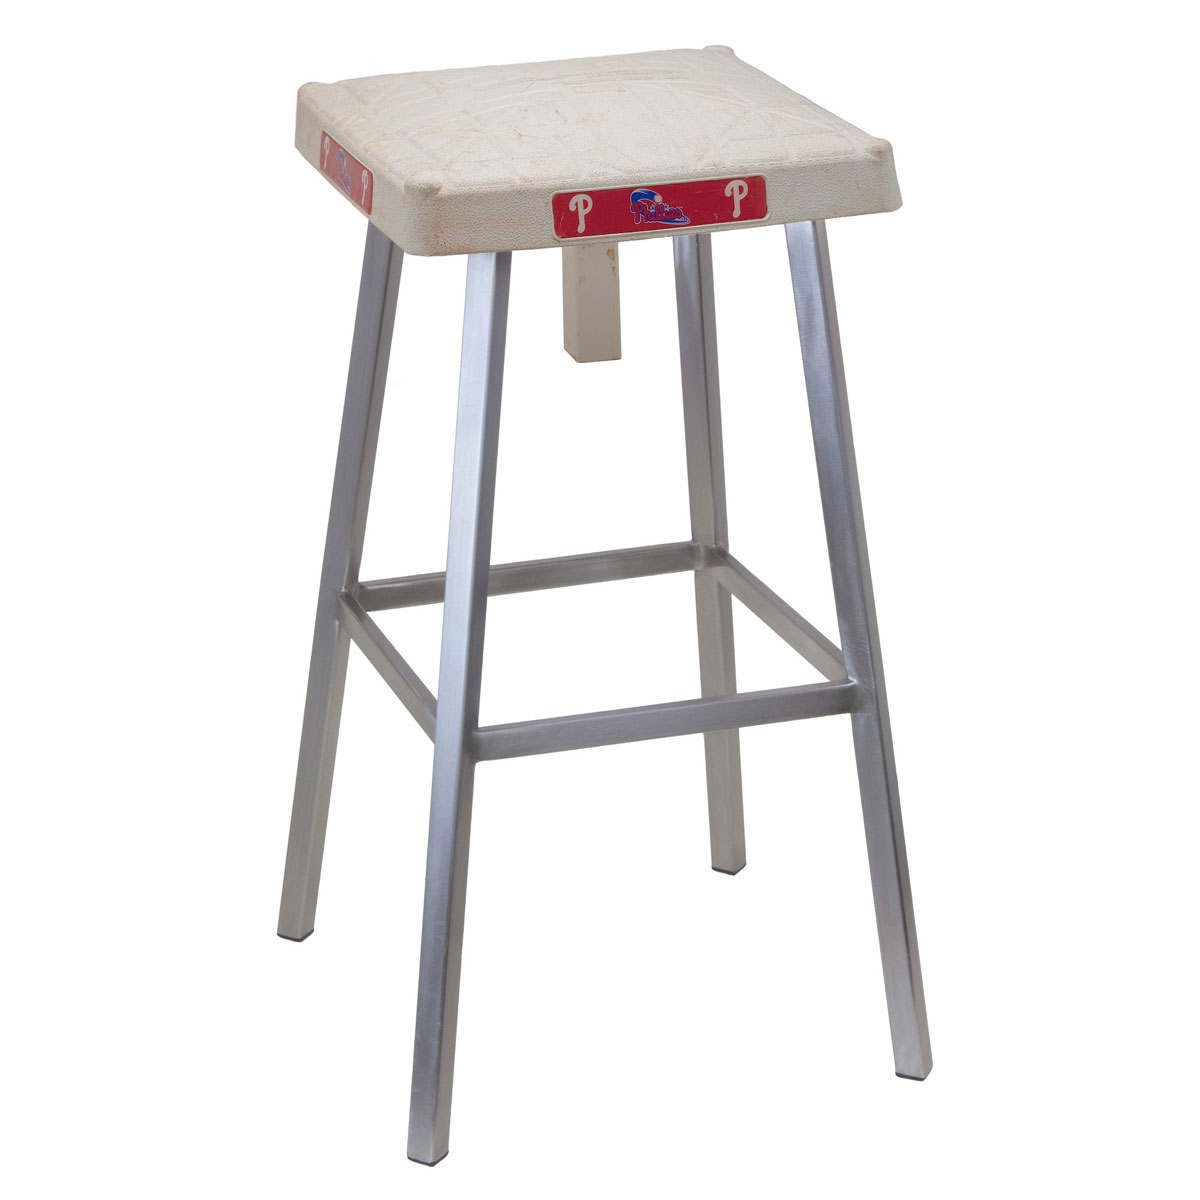 Authentic Baseball Base Bar Stool The Green Head